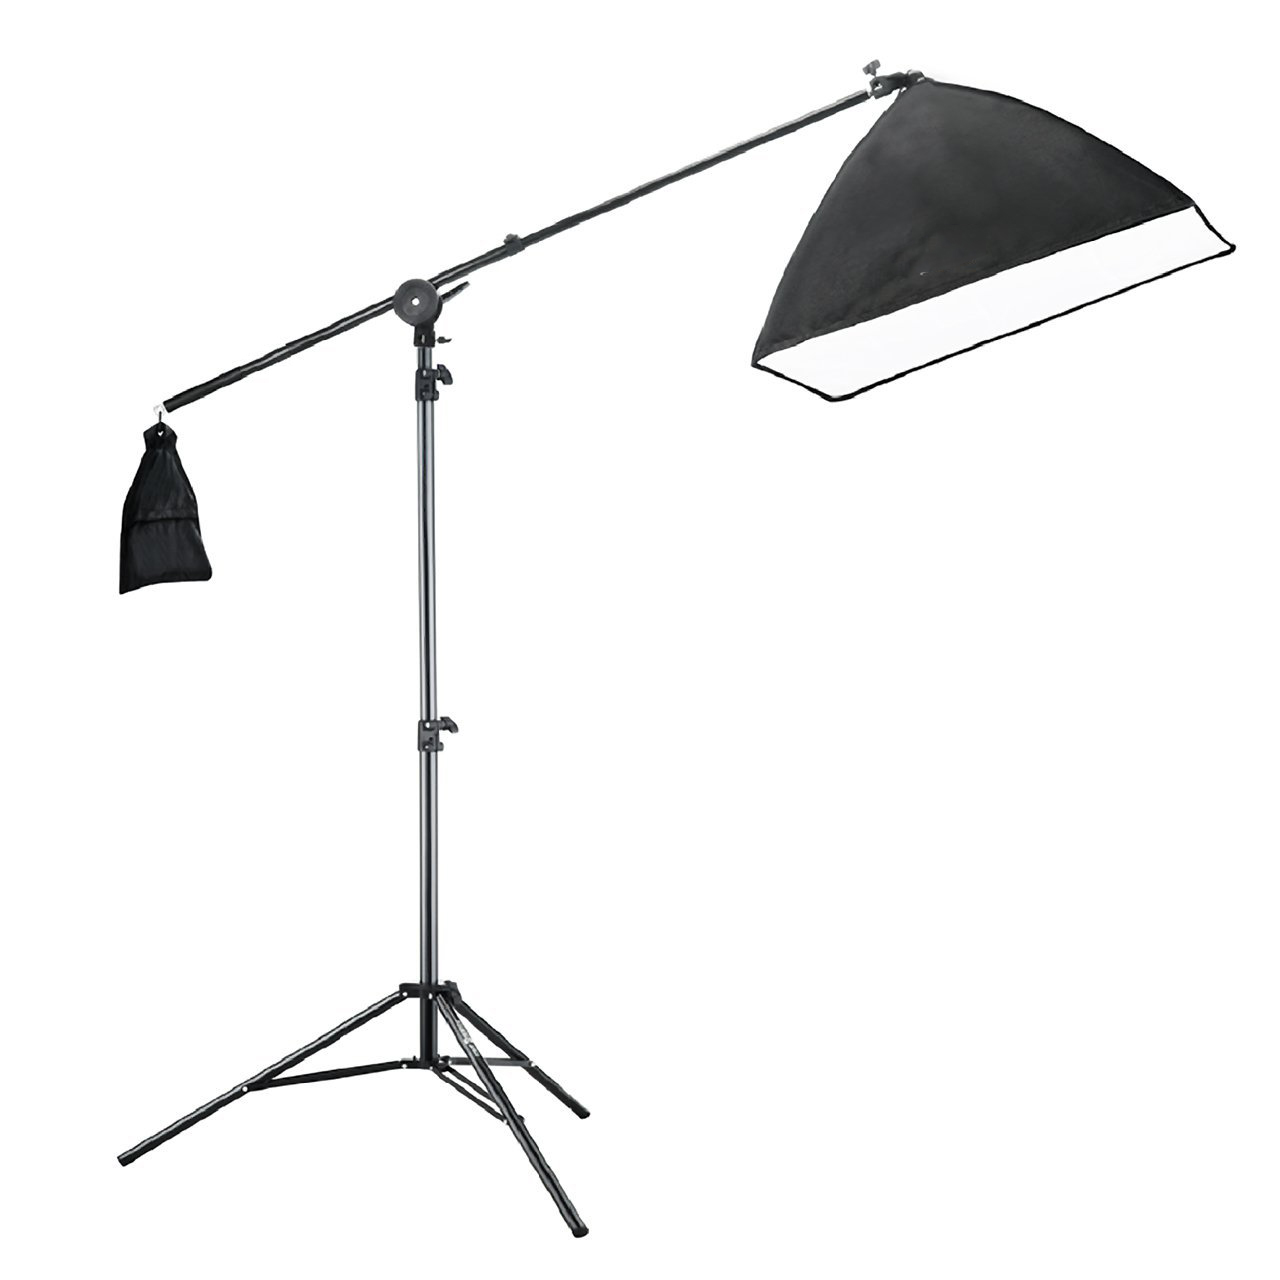 Photo Studio Lighting Overhead Flexible Arm Stand Photographic equipment  light STAND with cross arm softbox set 2m studio CD50 professional photographic equipment camera softbox with light stand photo studio soft box for dslr photography studio light box